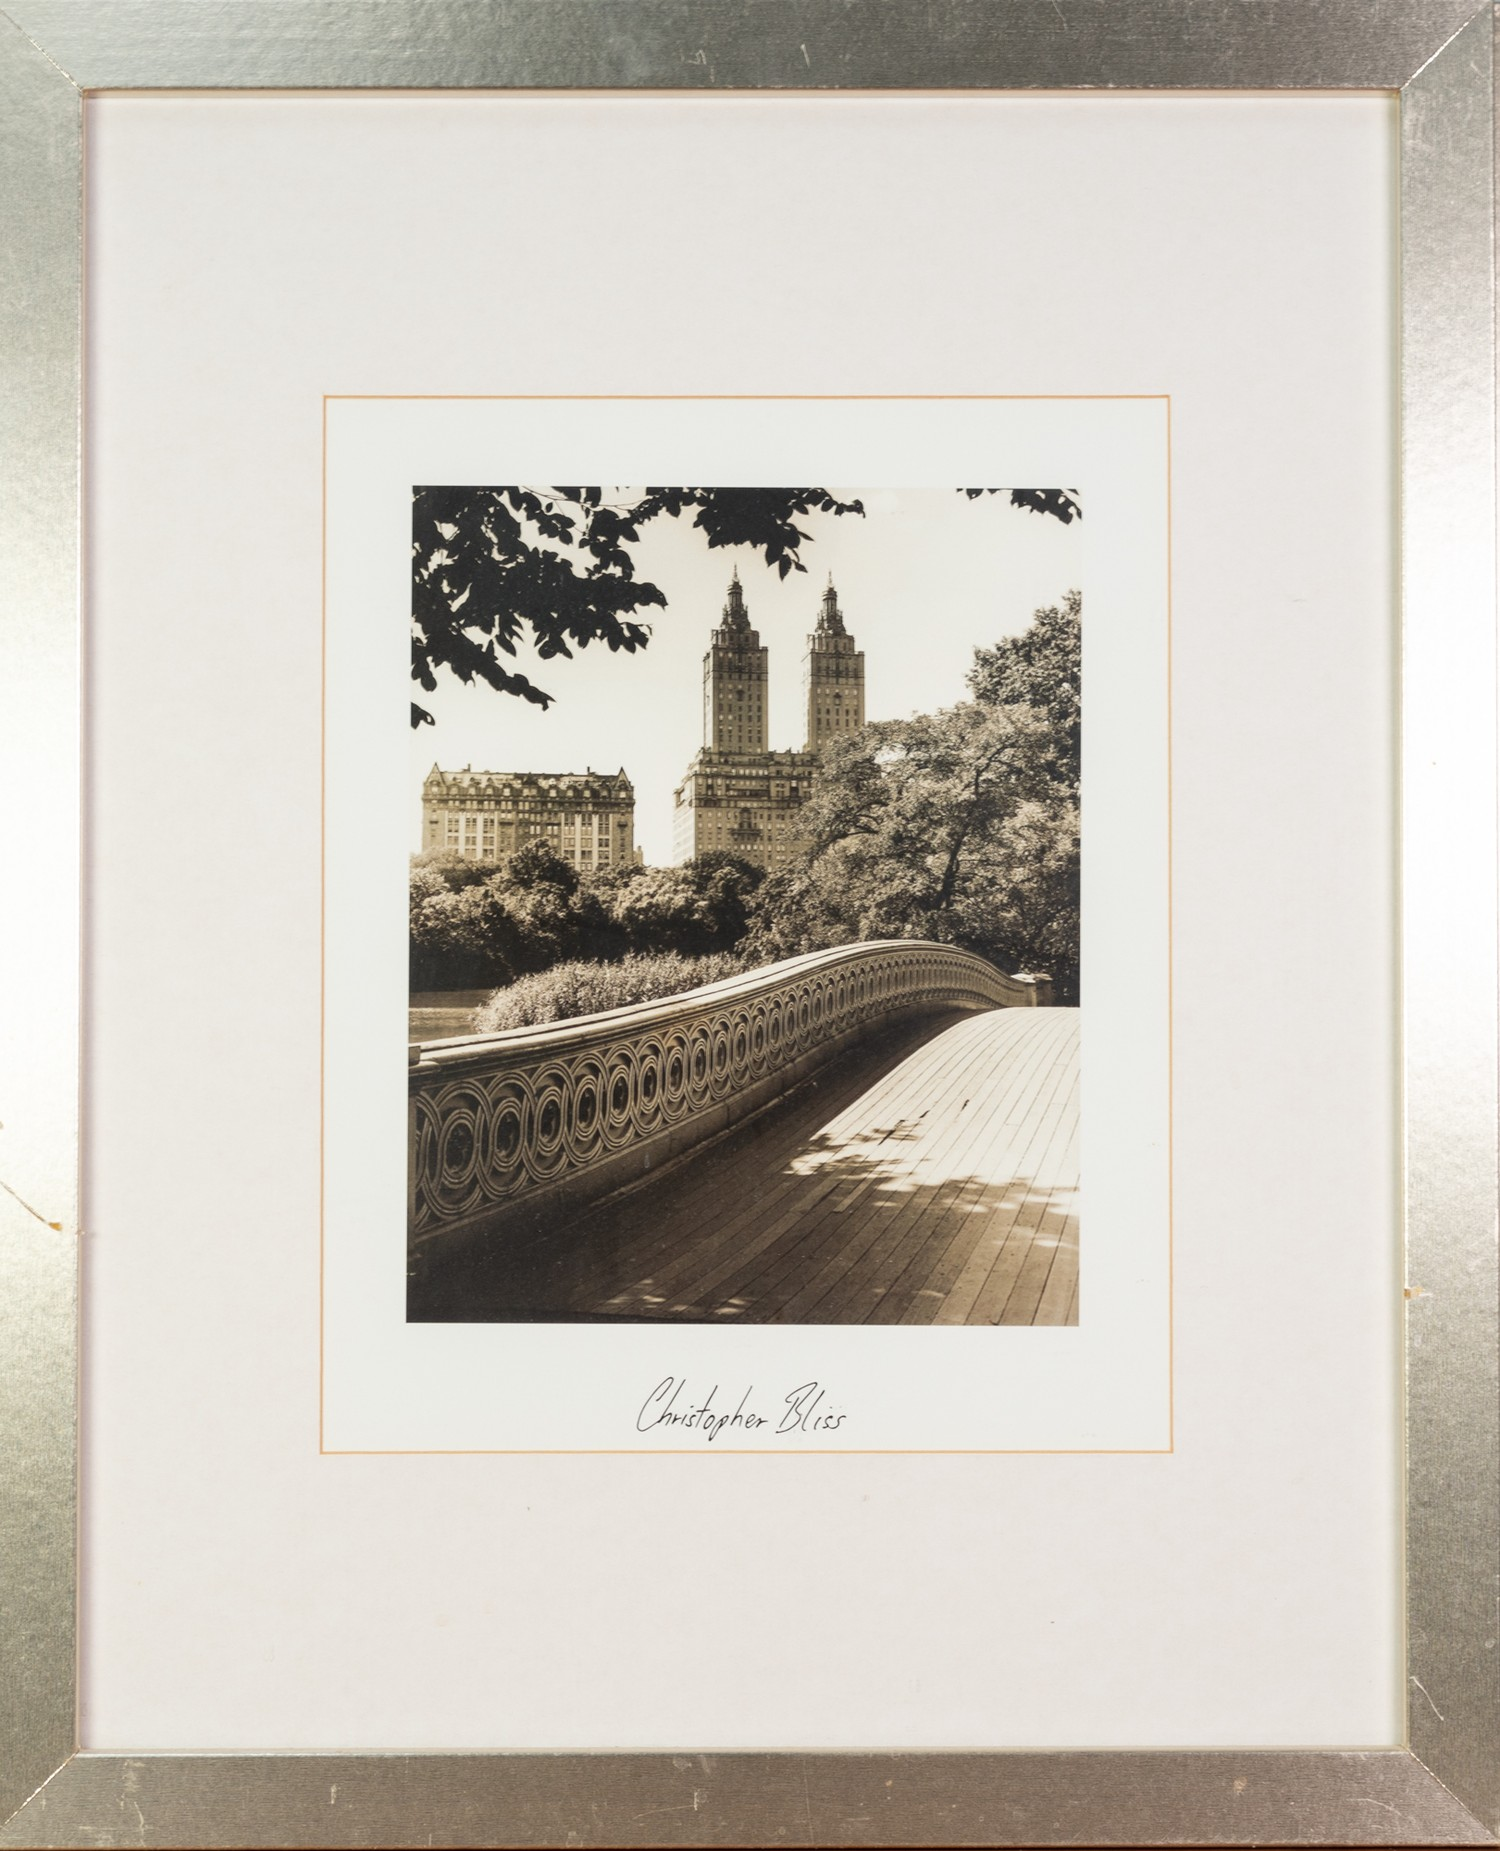 CHRISTOPHER BLISS (AMERICAN) TWO BLACK AND WHITE PHOTOGRAPHIC PRINTS New York Cityscapes each with - Image 2 of 4